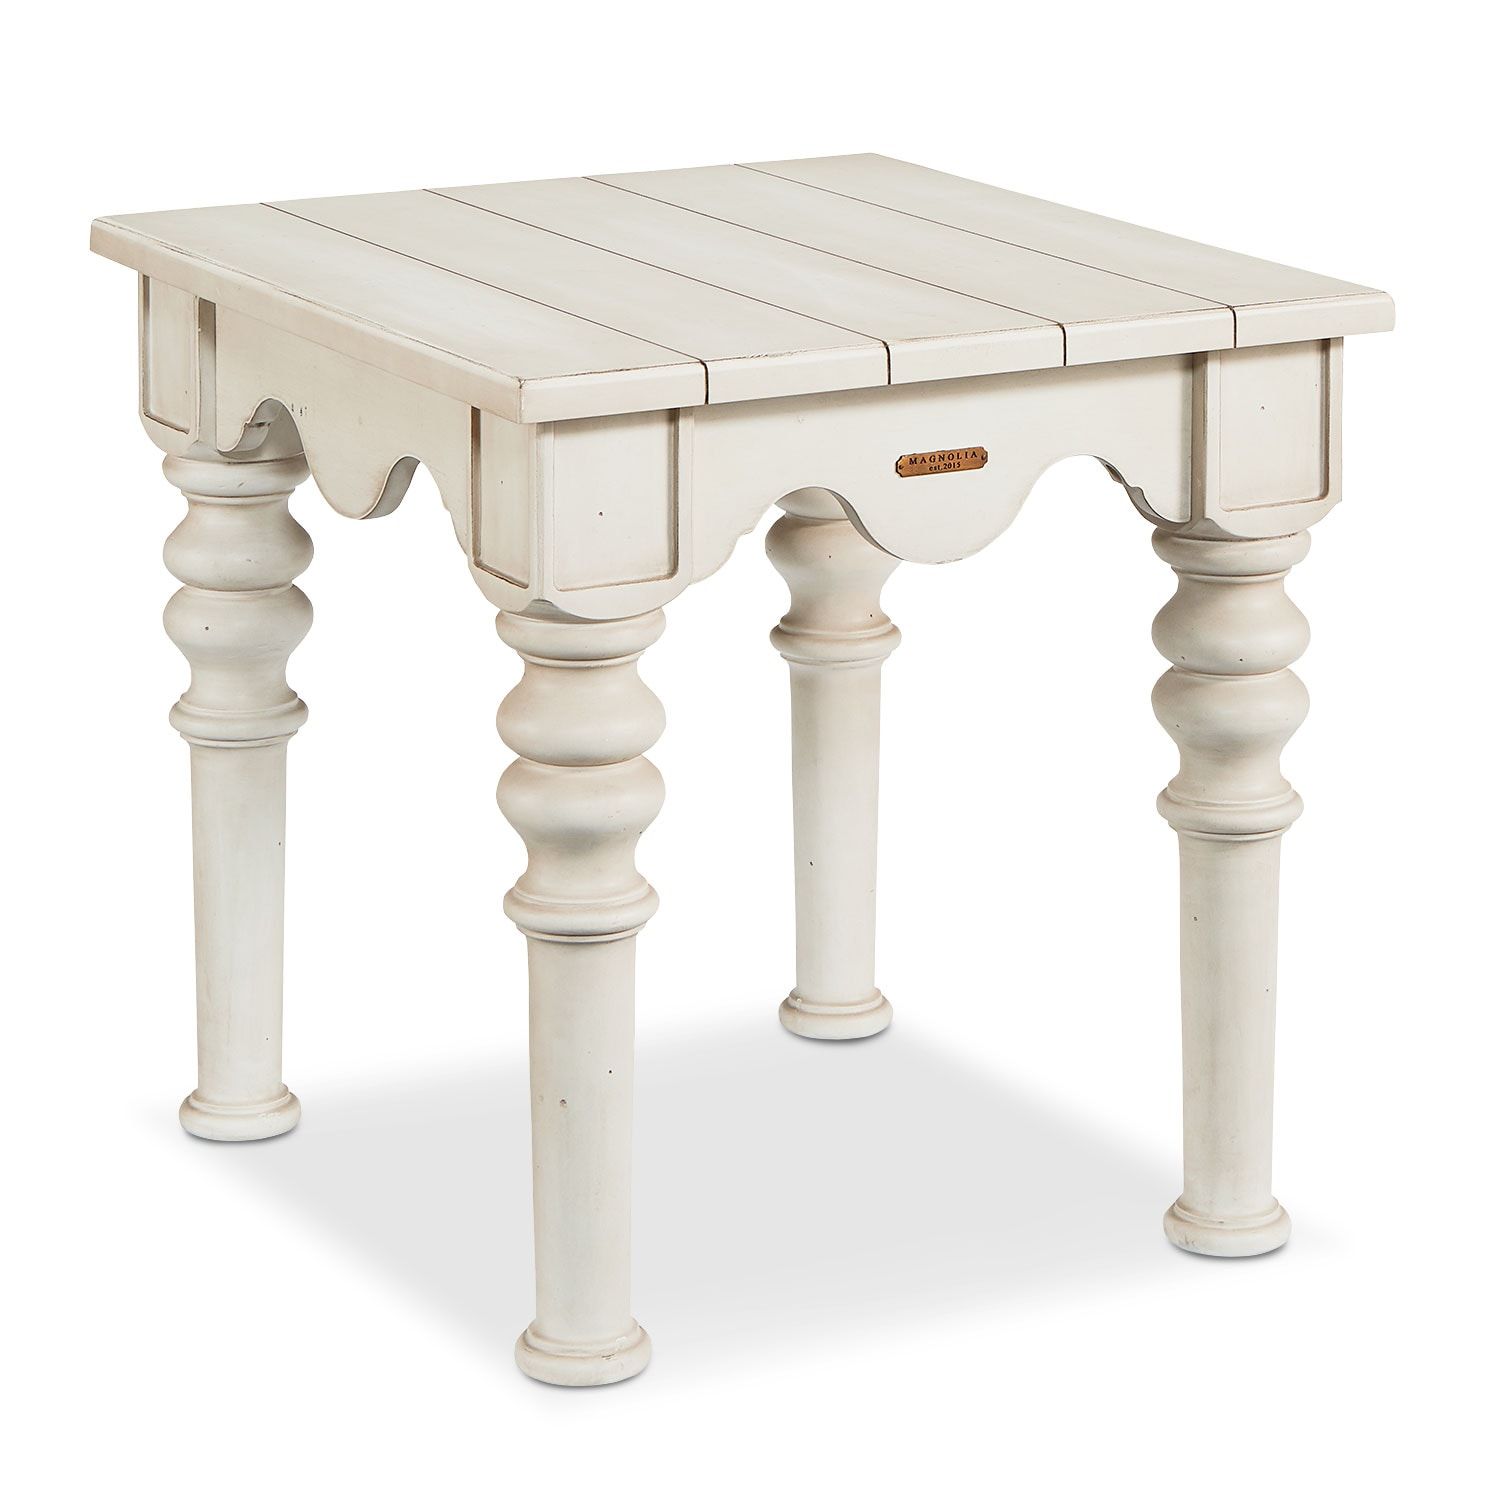 Scallop Side Table - Antique White